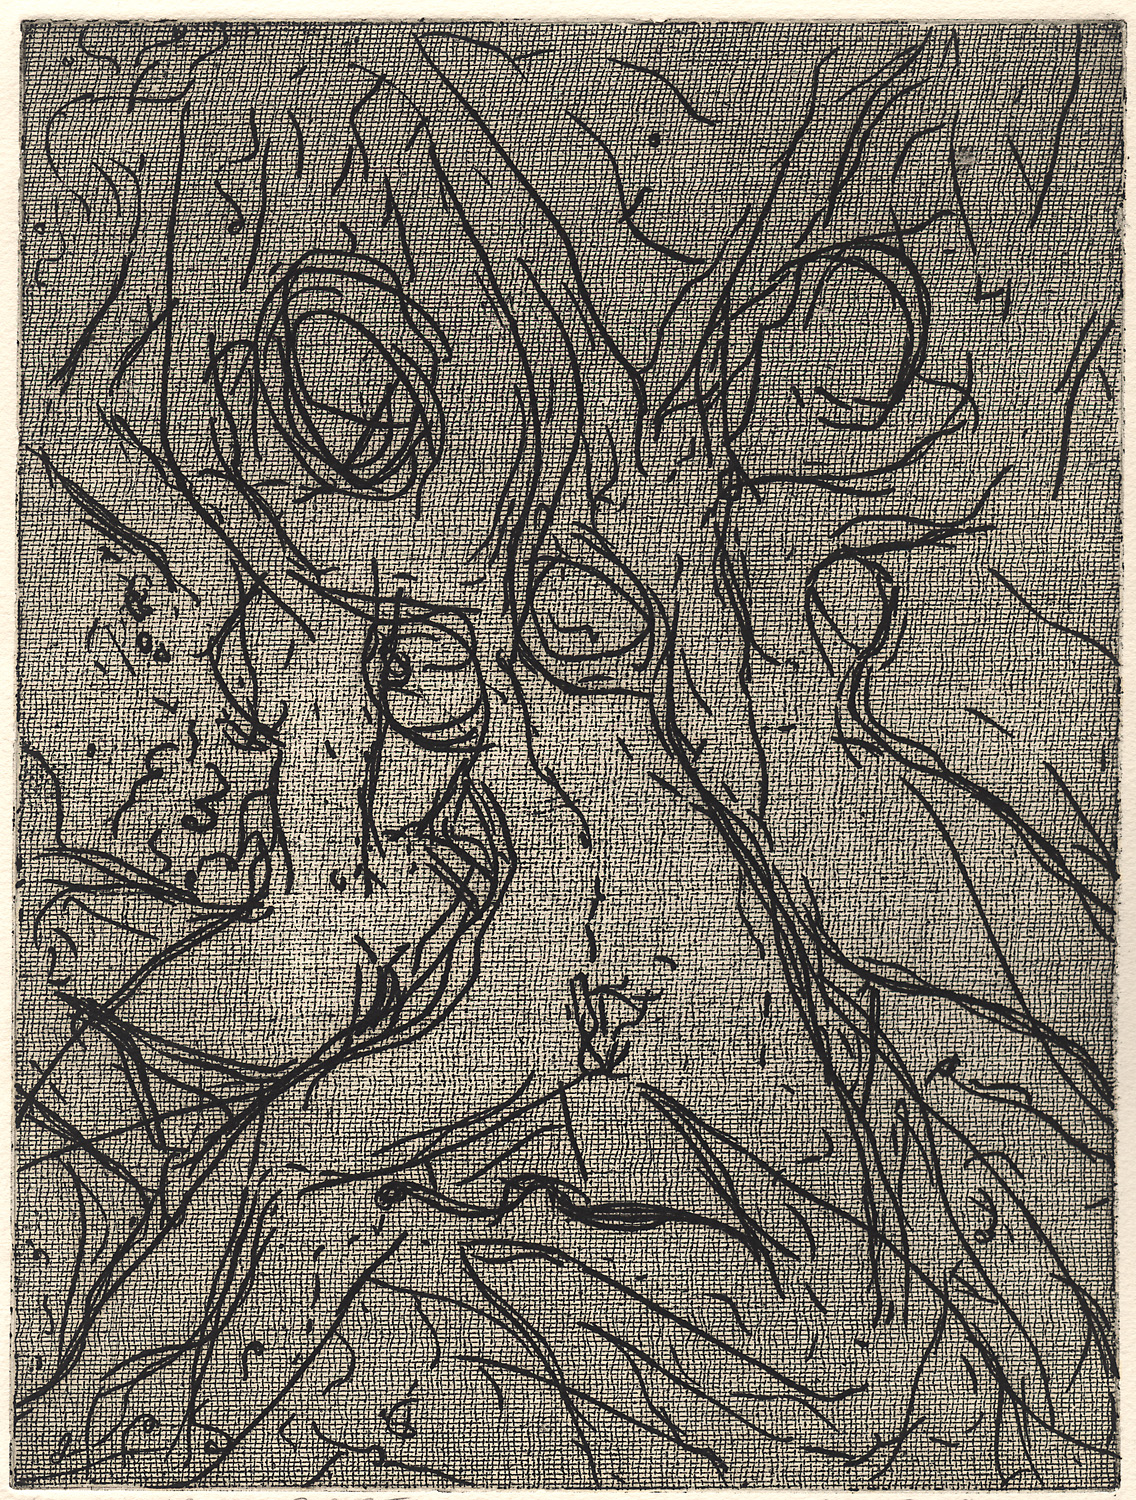 Indira-Cesarine-Multifaceted-no-crop-Intaglio-Ink-on-Rag-Paper-The-Sappho-Series-1993.jpg